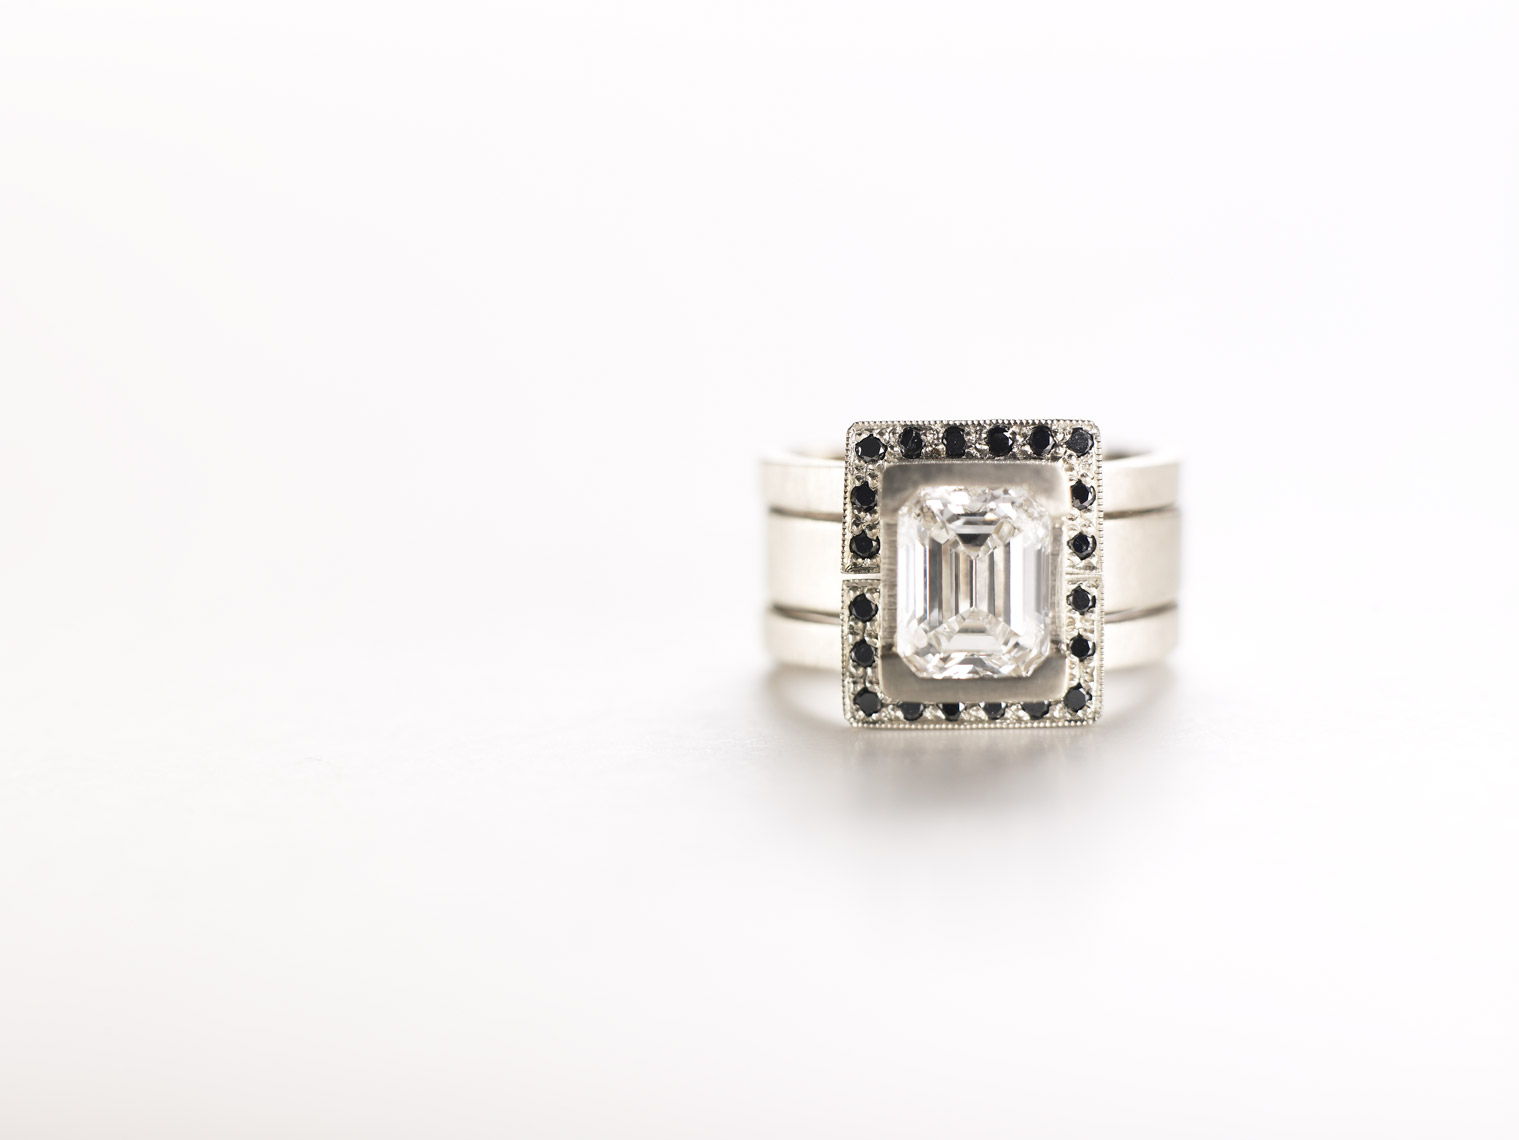 AlanCampbellPhotography, Unreal diamond ring